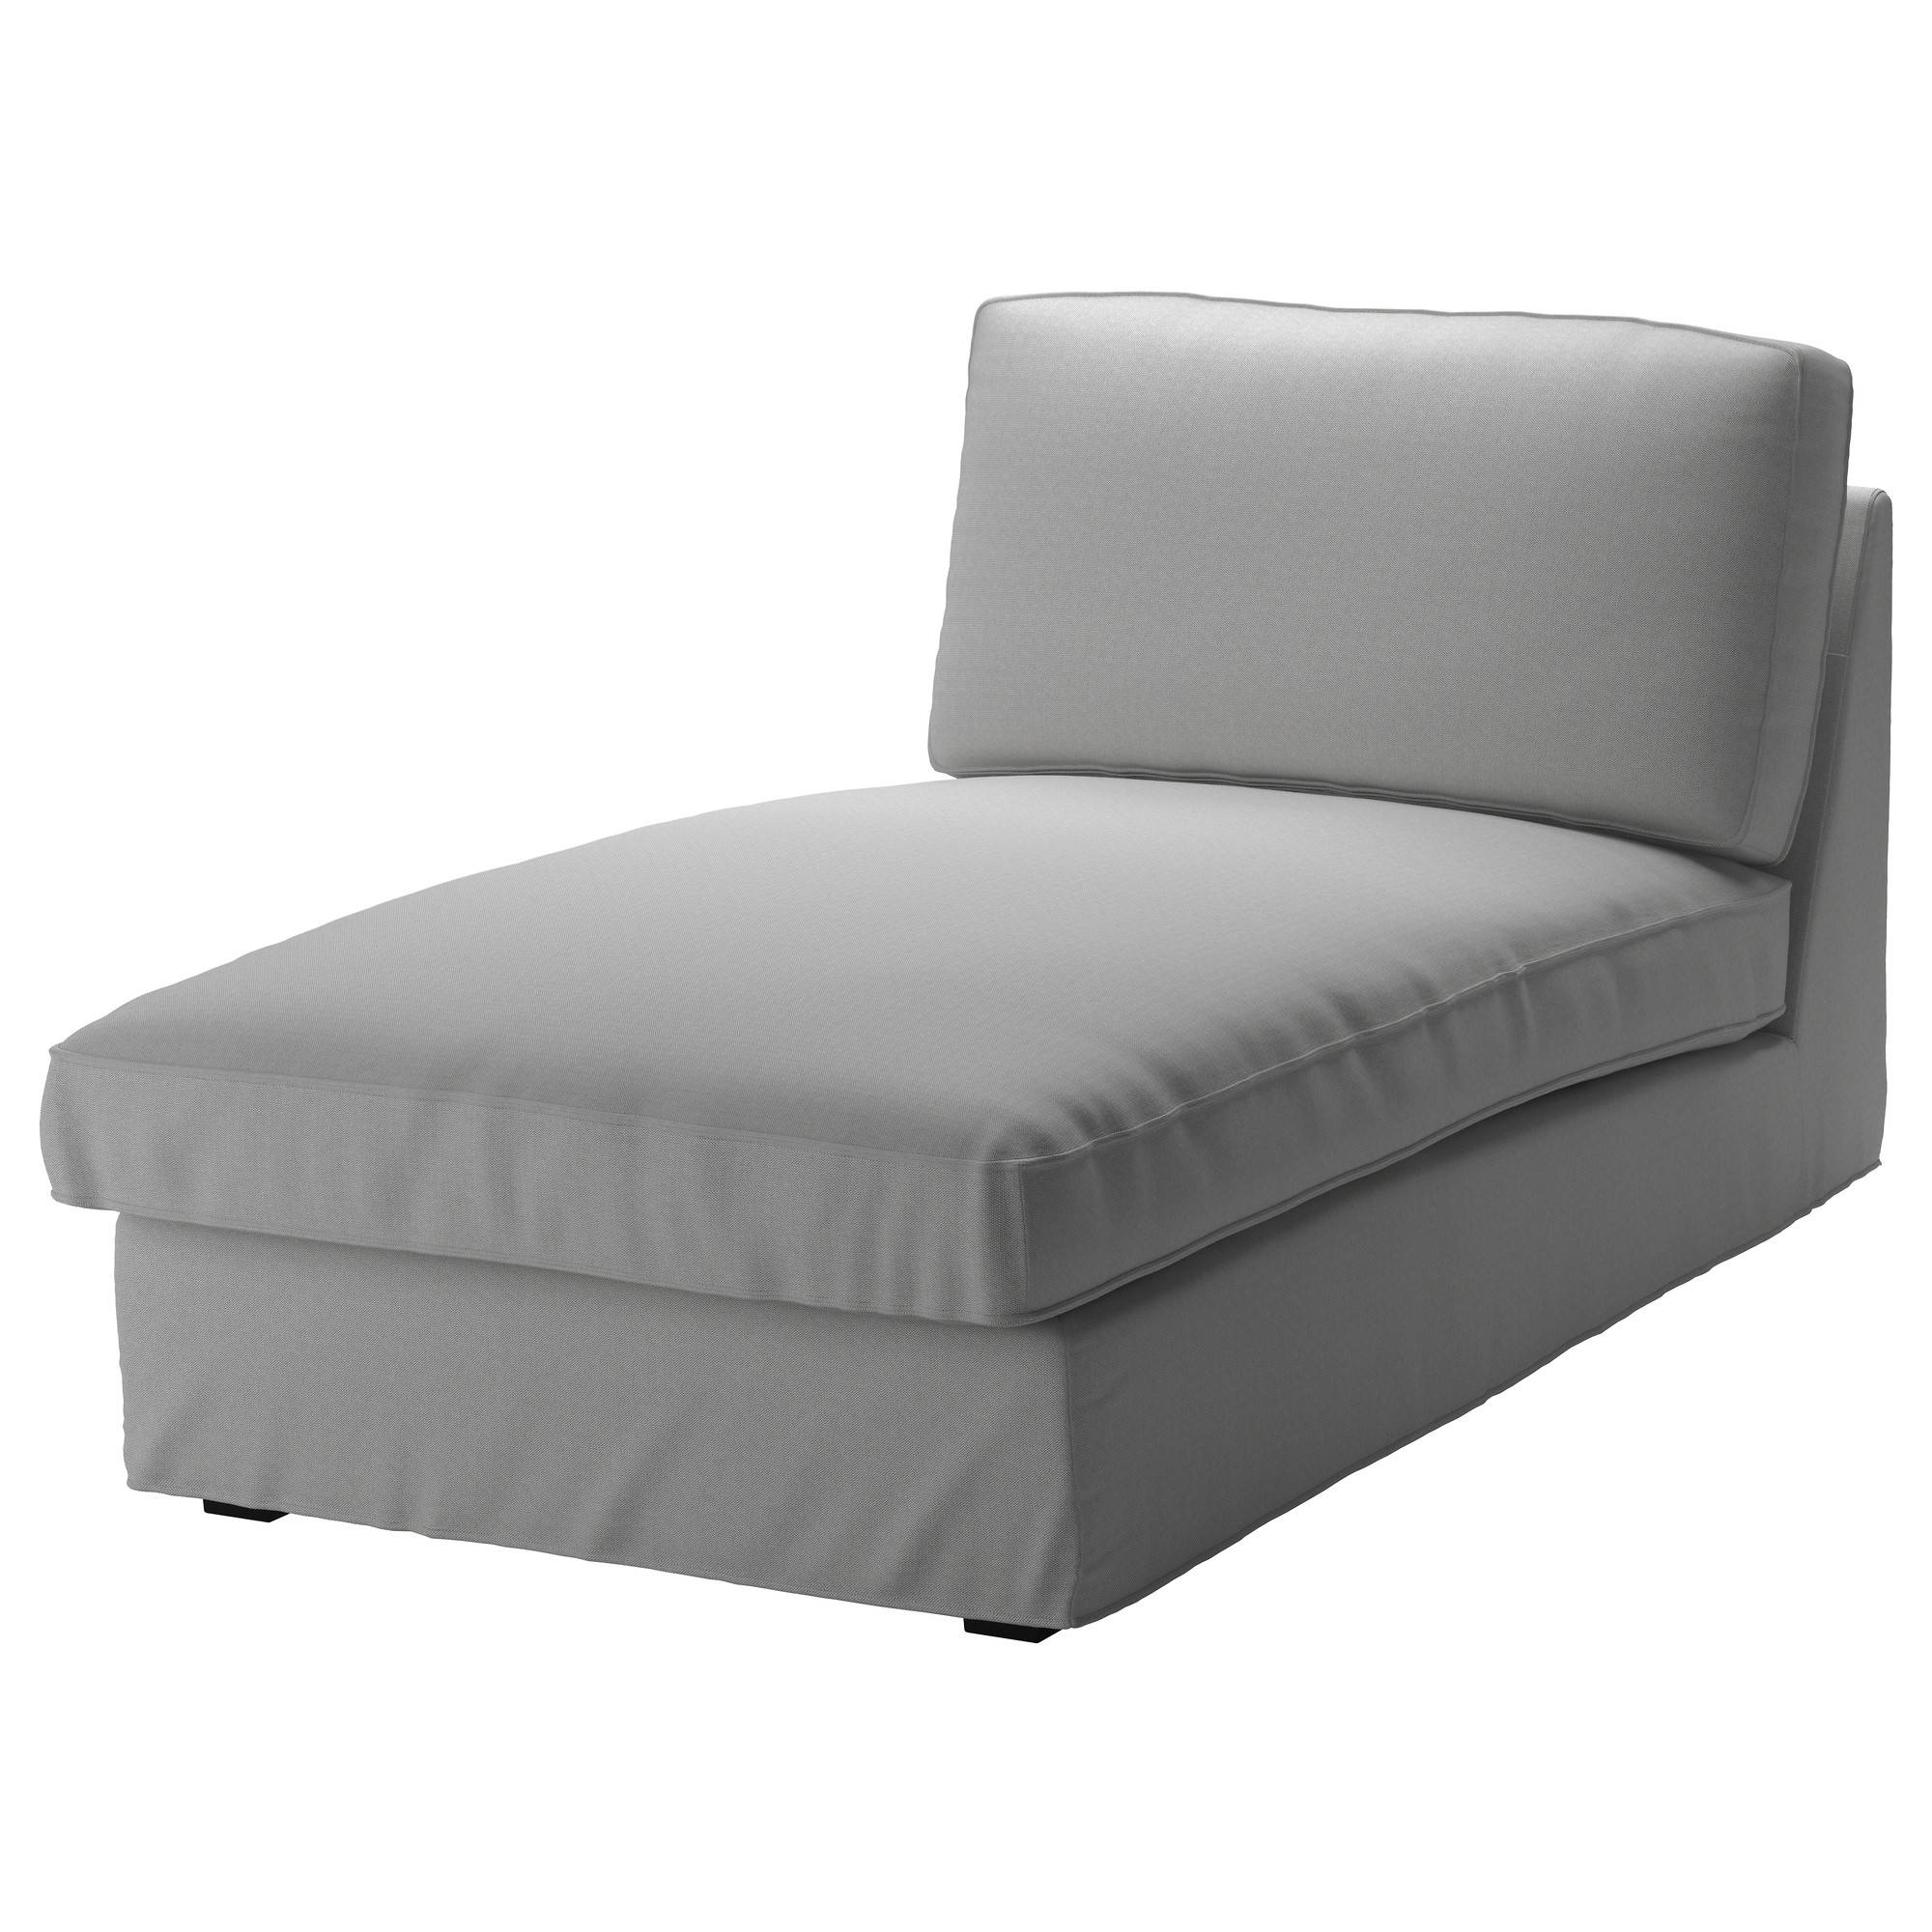 Kivik Chaise Cover - Orrsta Light Gray - Ikea inside Ikea Chaise Lounge Sofa (Image 20 of 30)